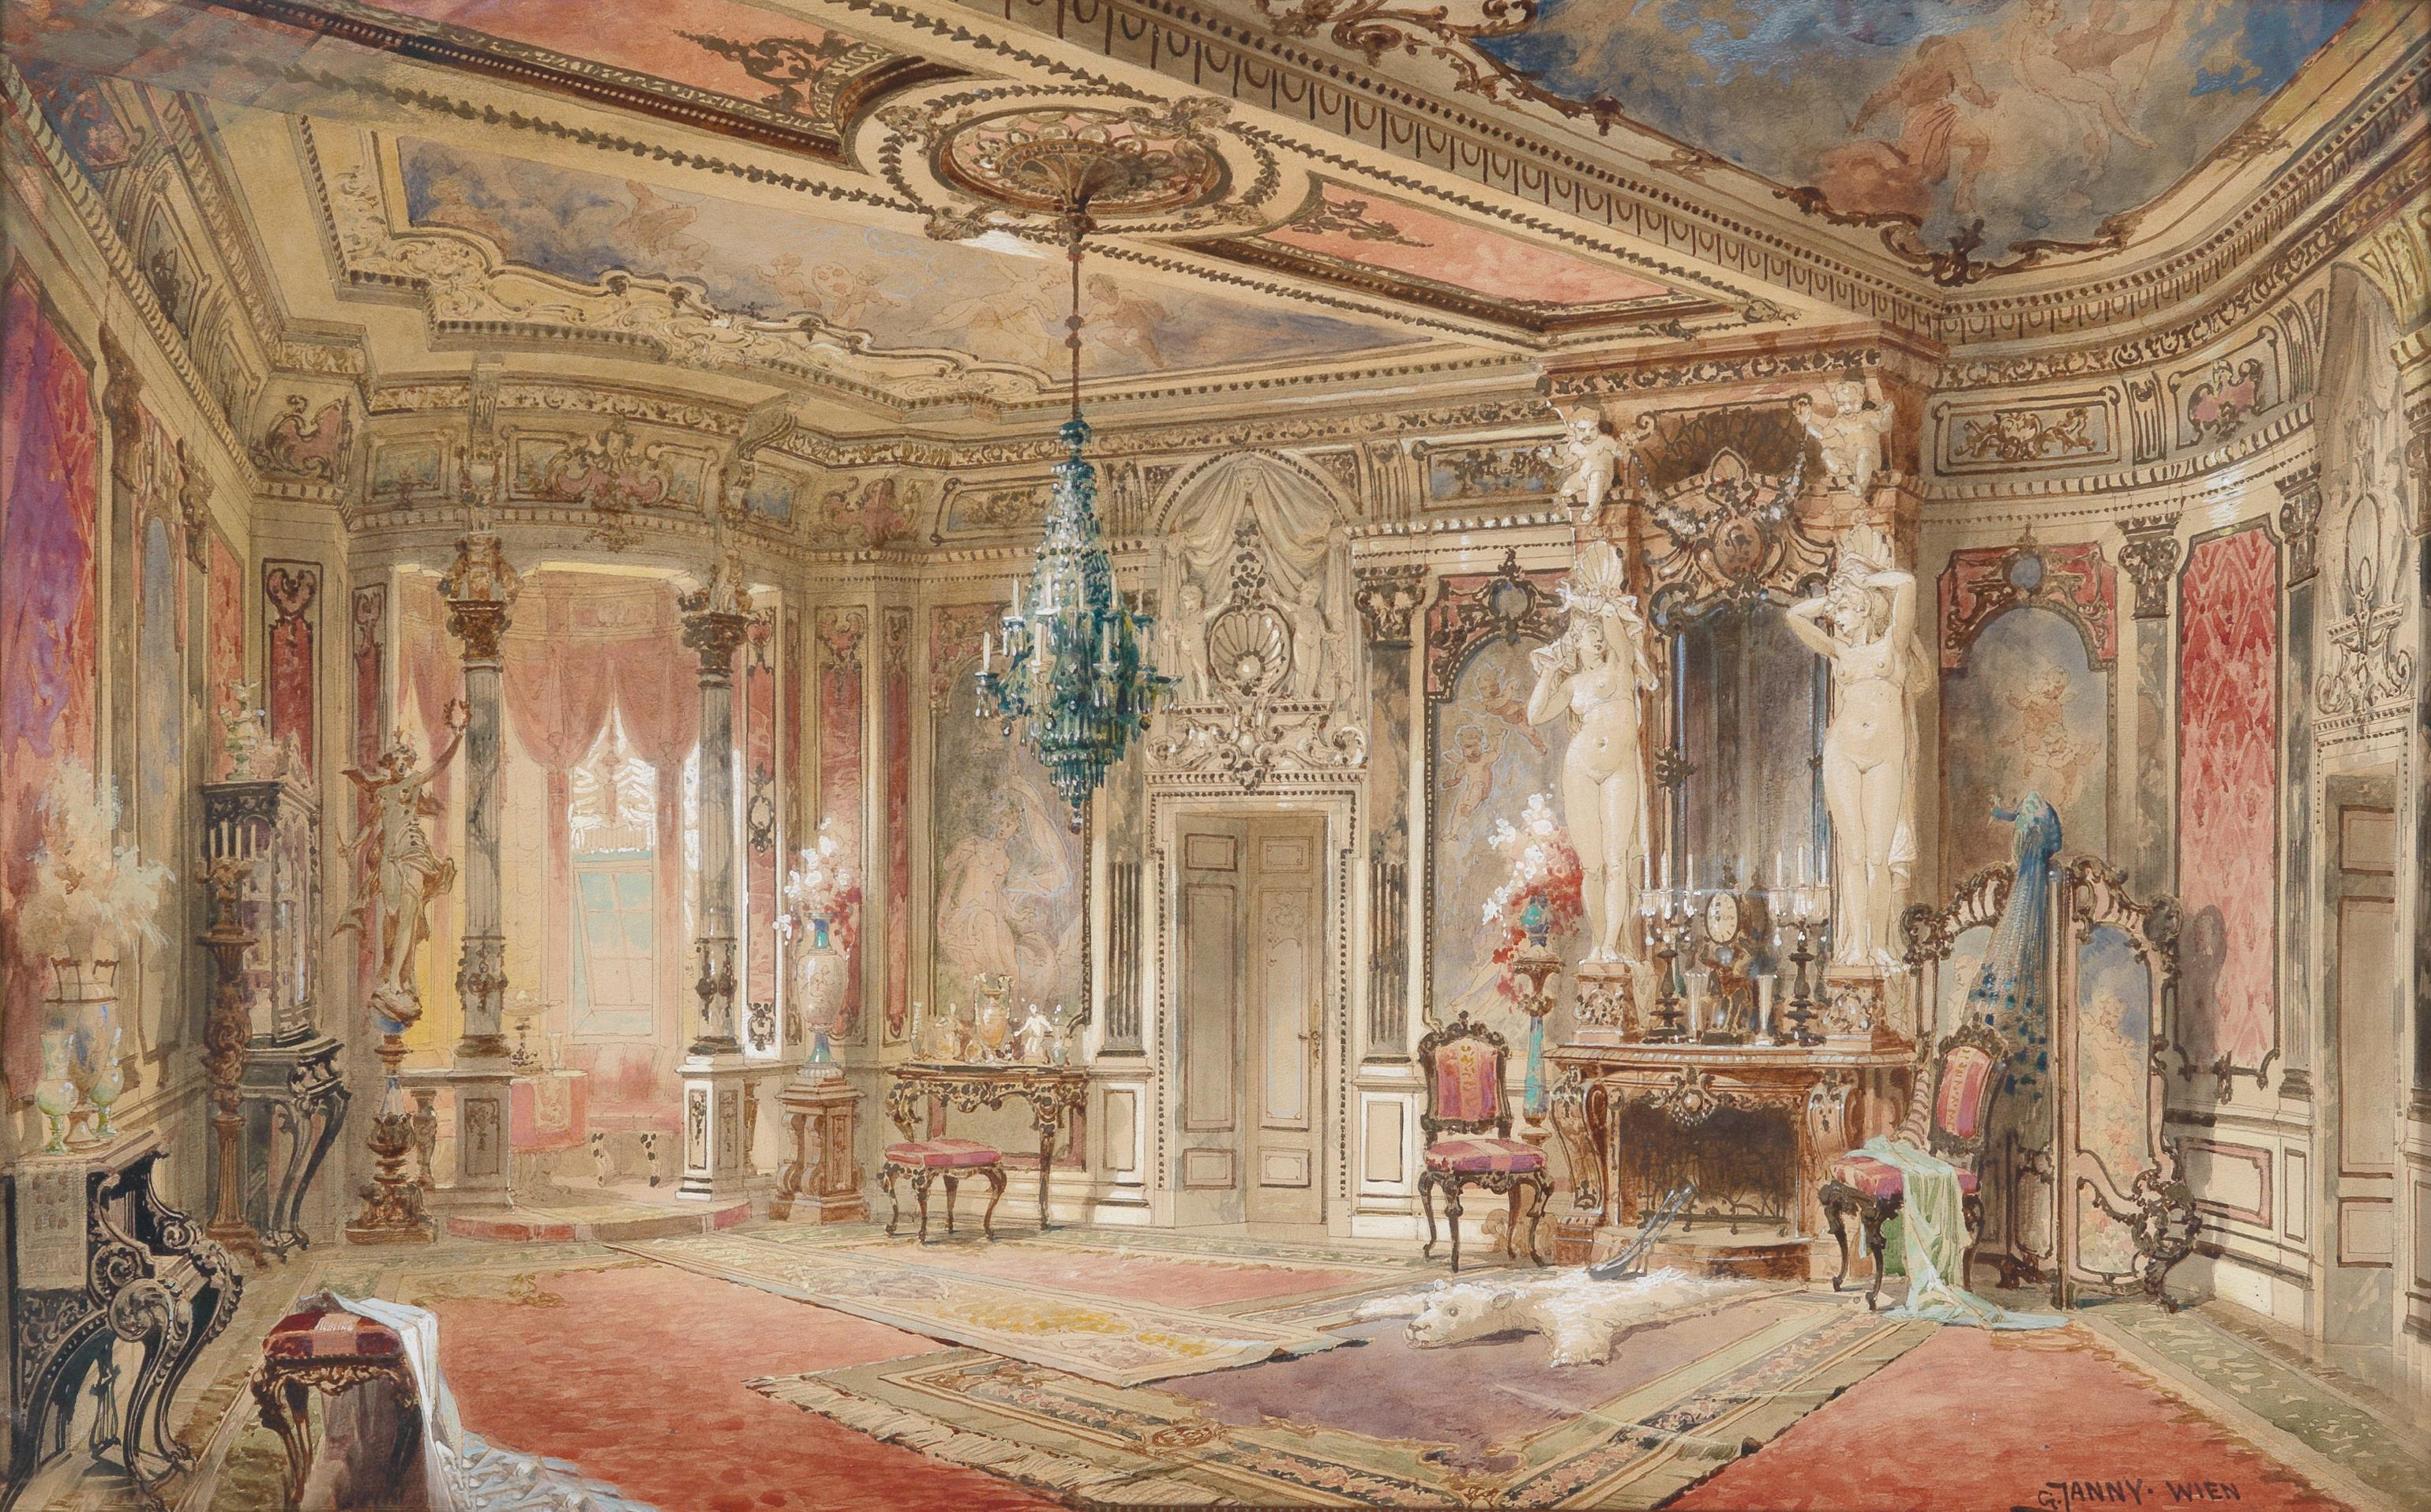 File:Georg Janny Salon im Makartstil.jpg - Wikimedia Commons